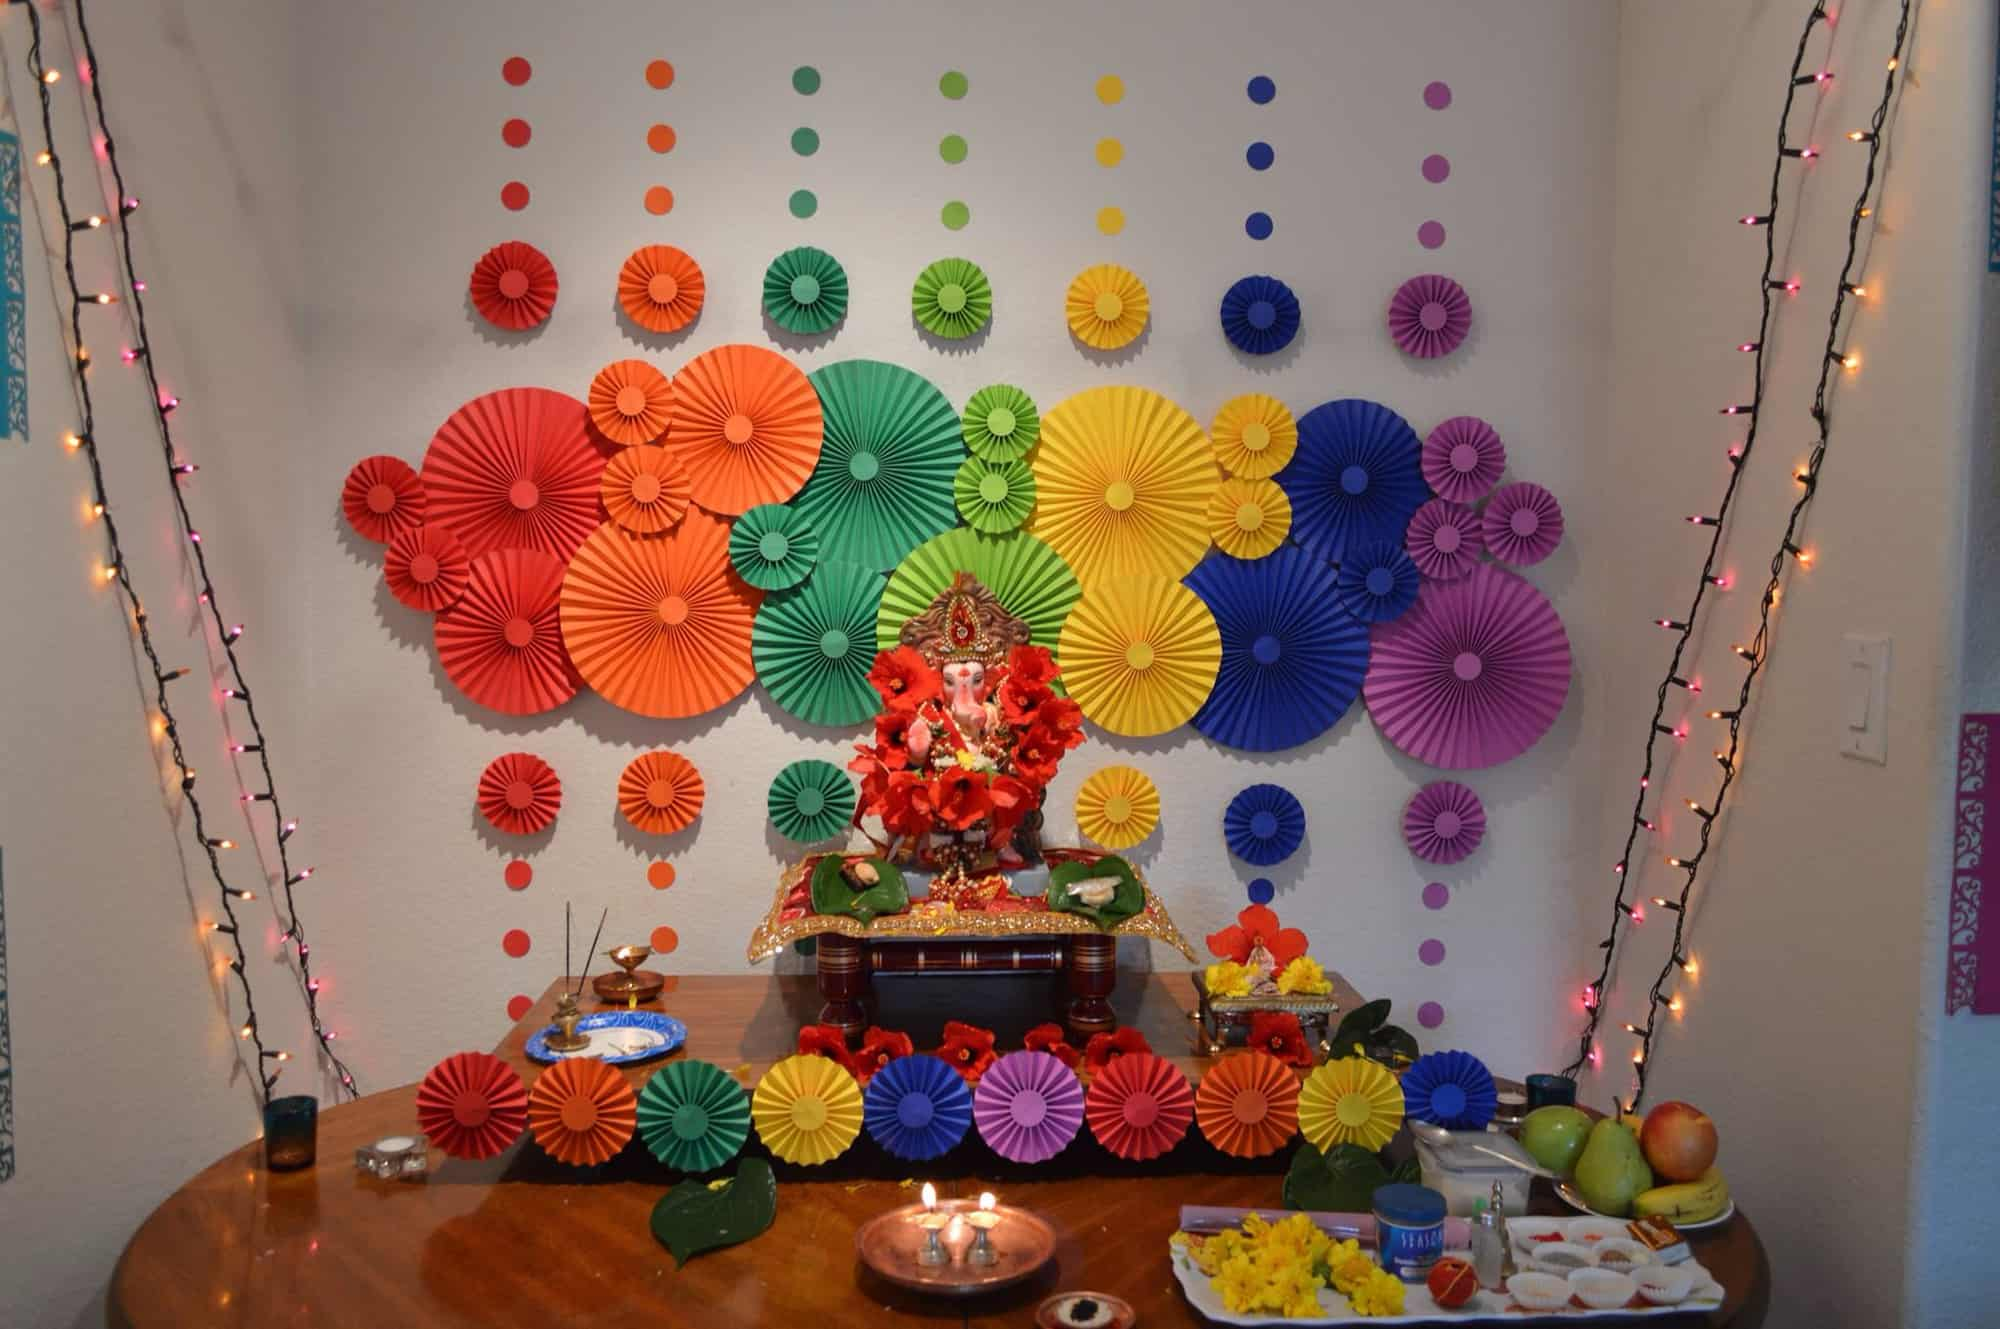 Flower Ideas For Home Decoration: Ideas To Get Your Kids Involved This Ganesh Chaturthi